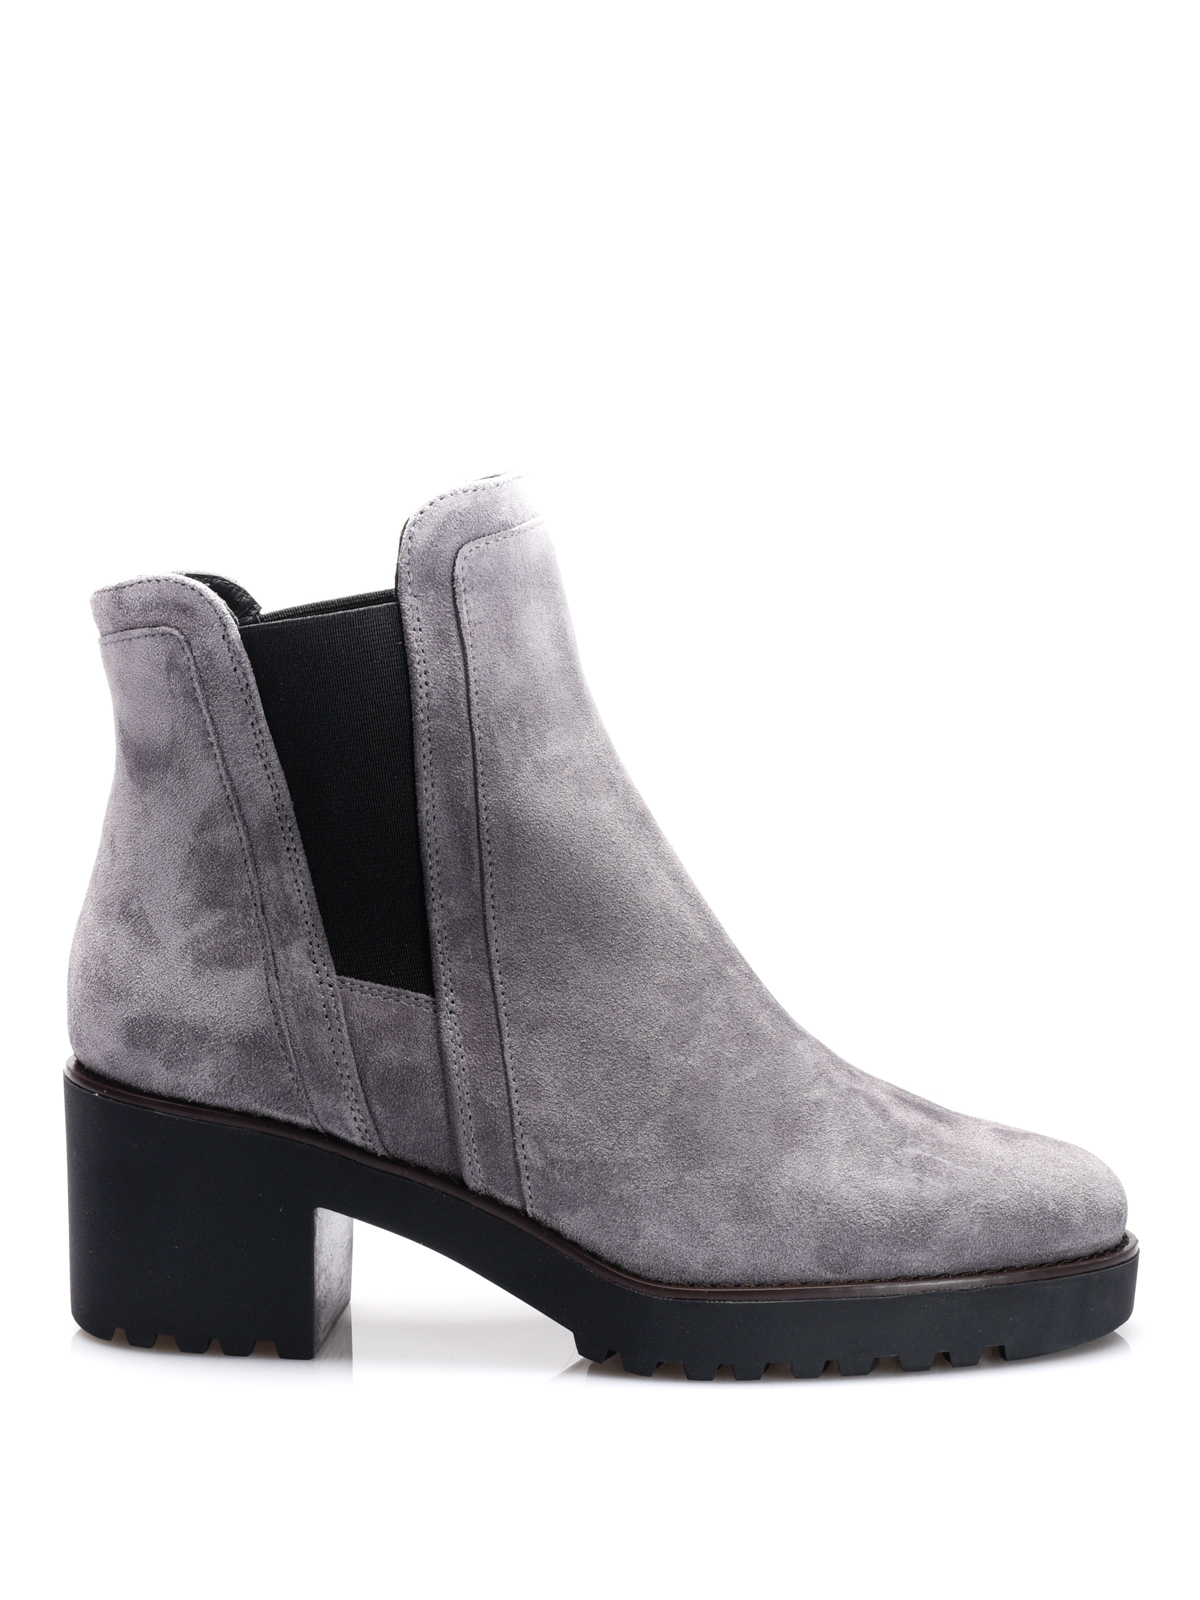 1e899c8fba Hogan - H277 suede booties - ankle boots - HXW2770S870BYEB800 ...